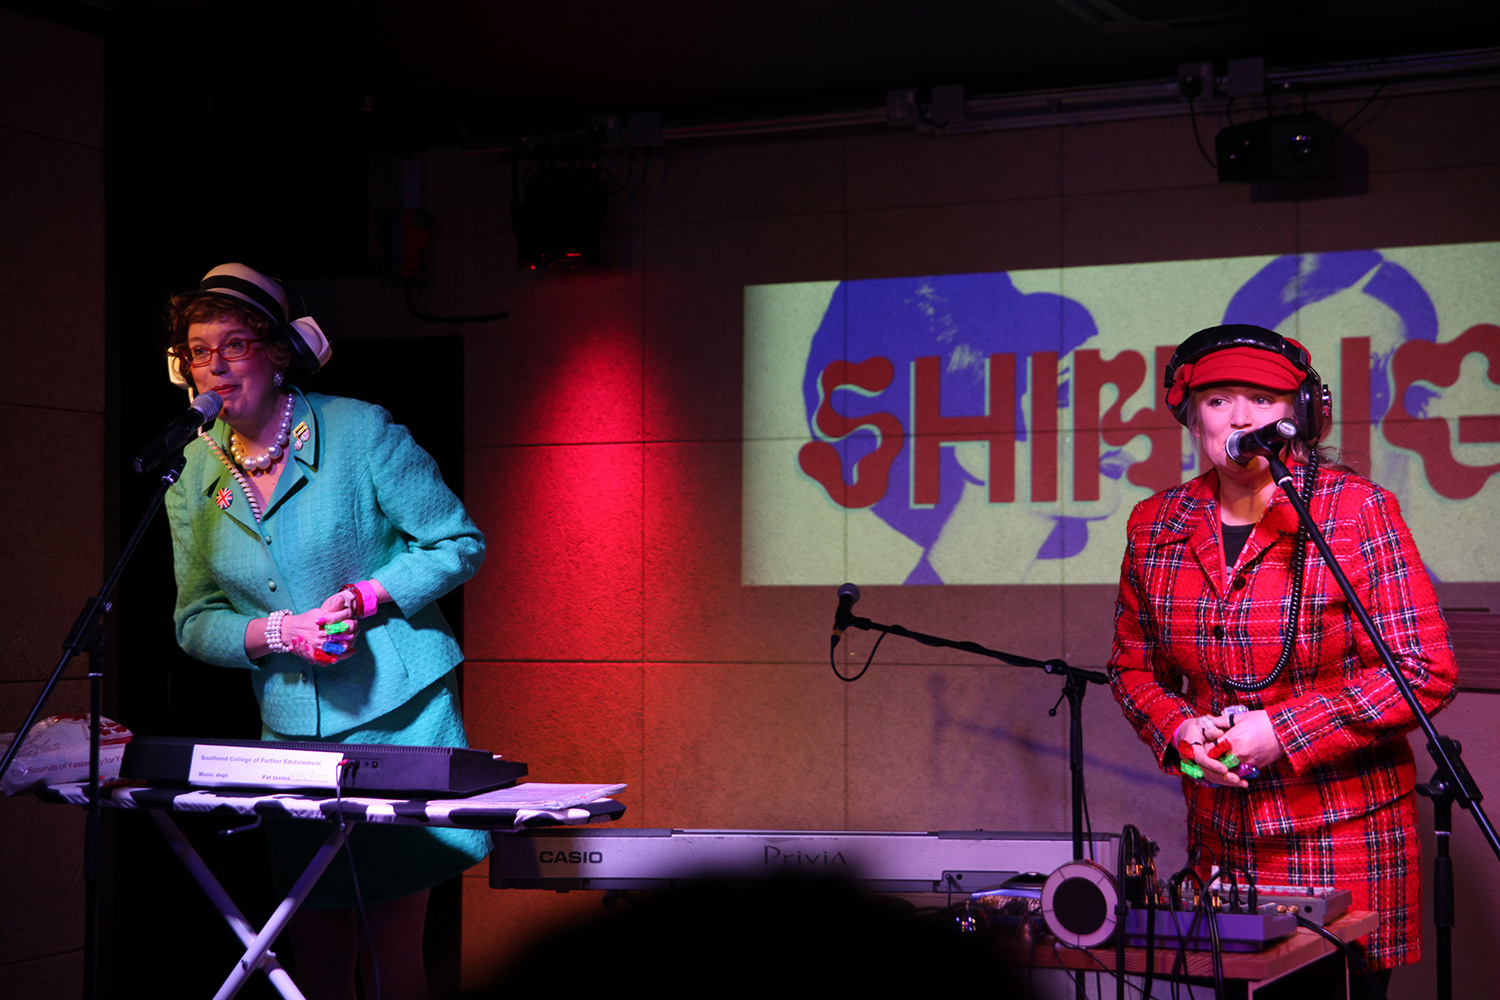 The Chalkwell Ladies Drum n' Bass League at 'Shindig' at Ace Hotel, London 2014. Photo by Holly Revell